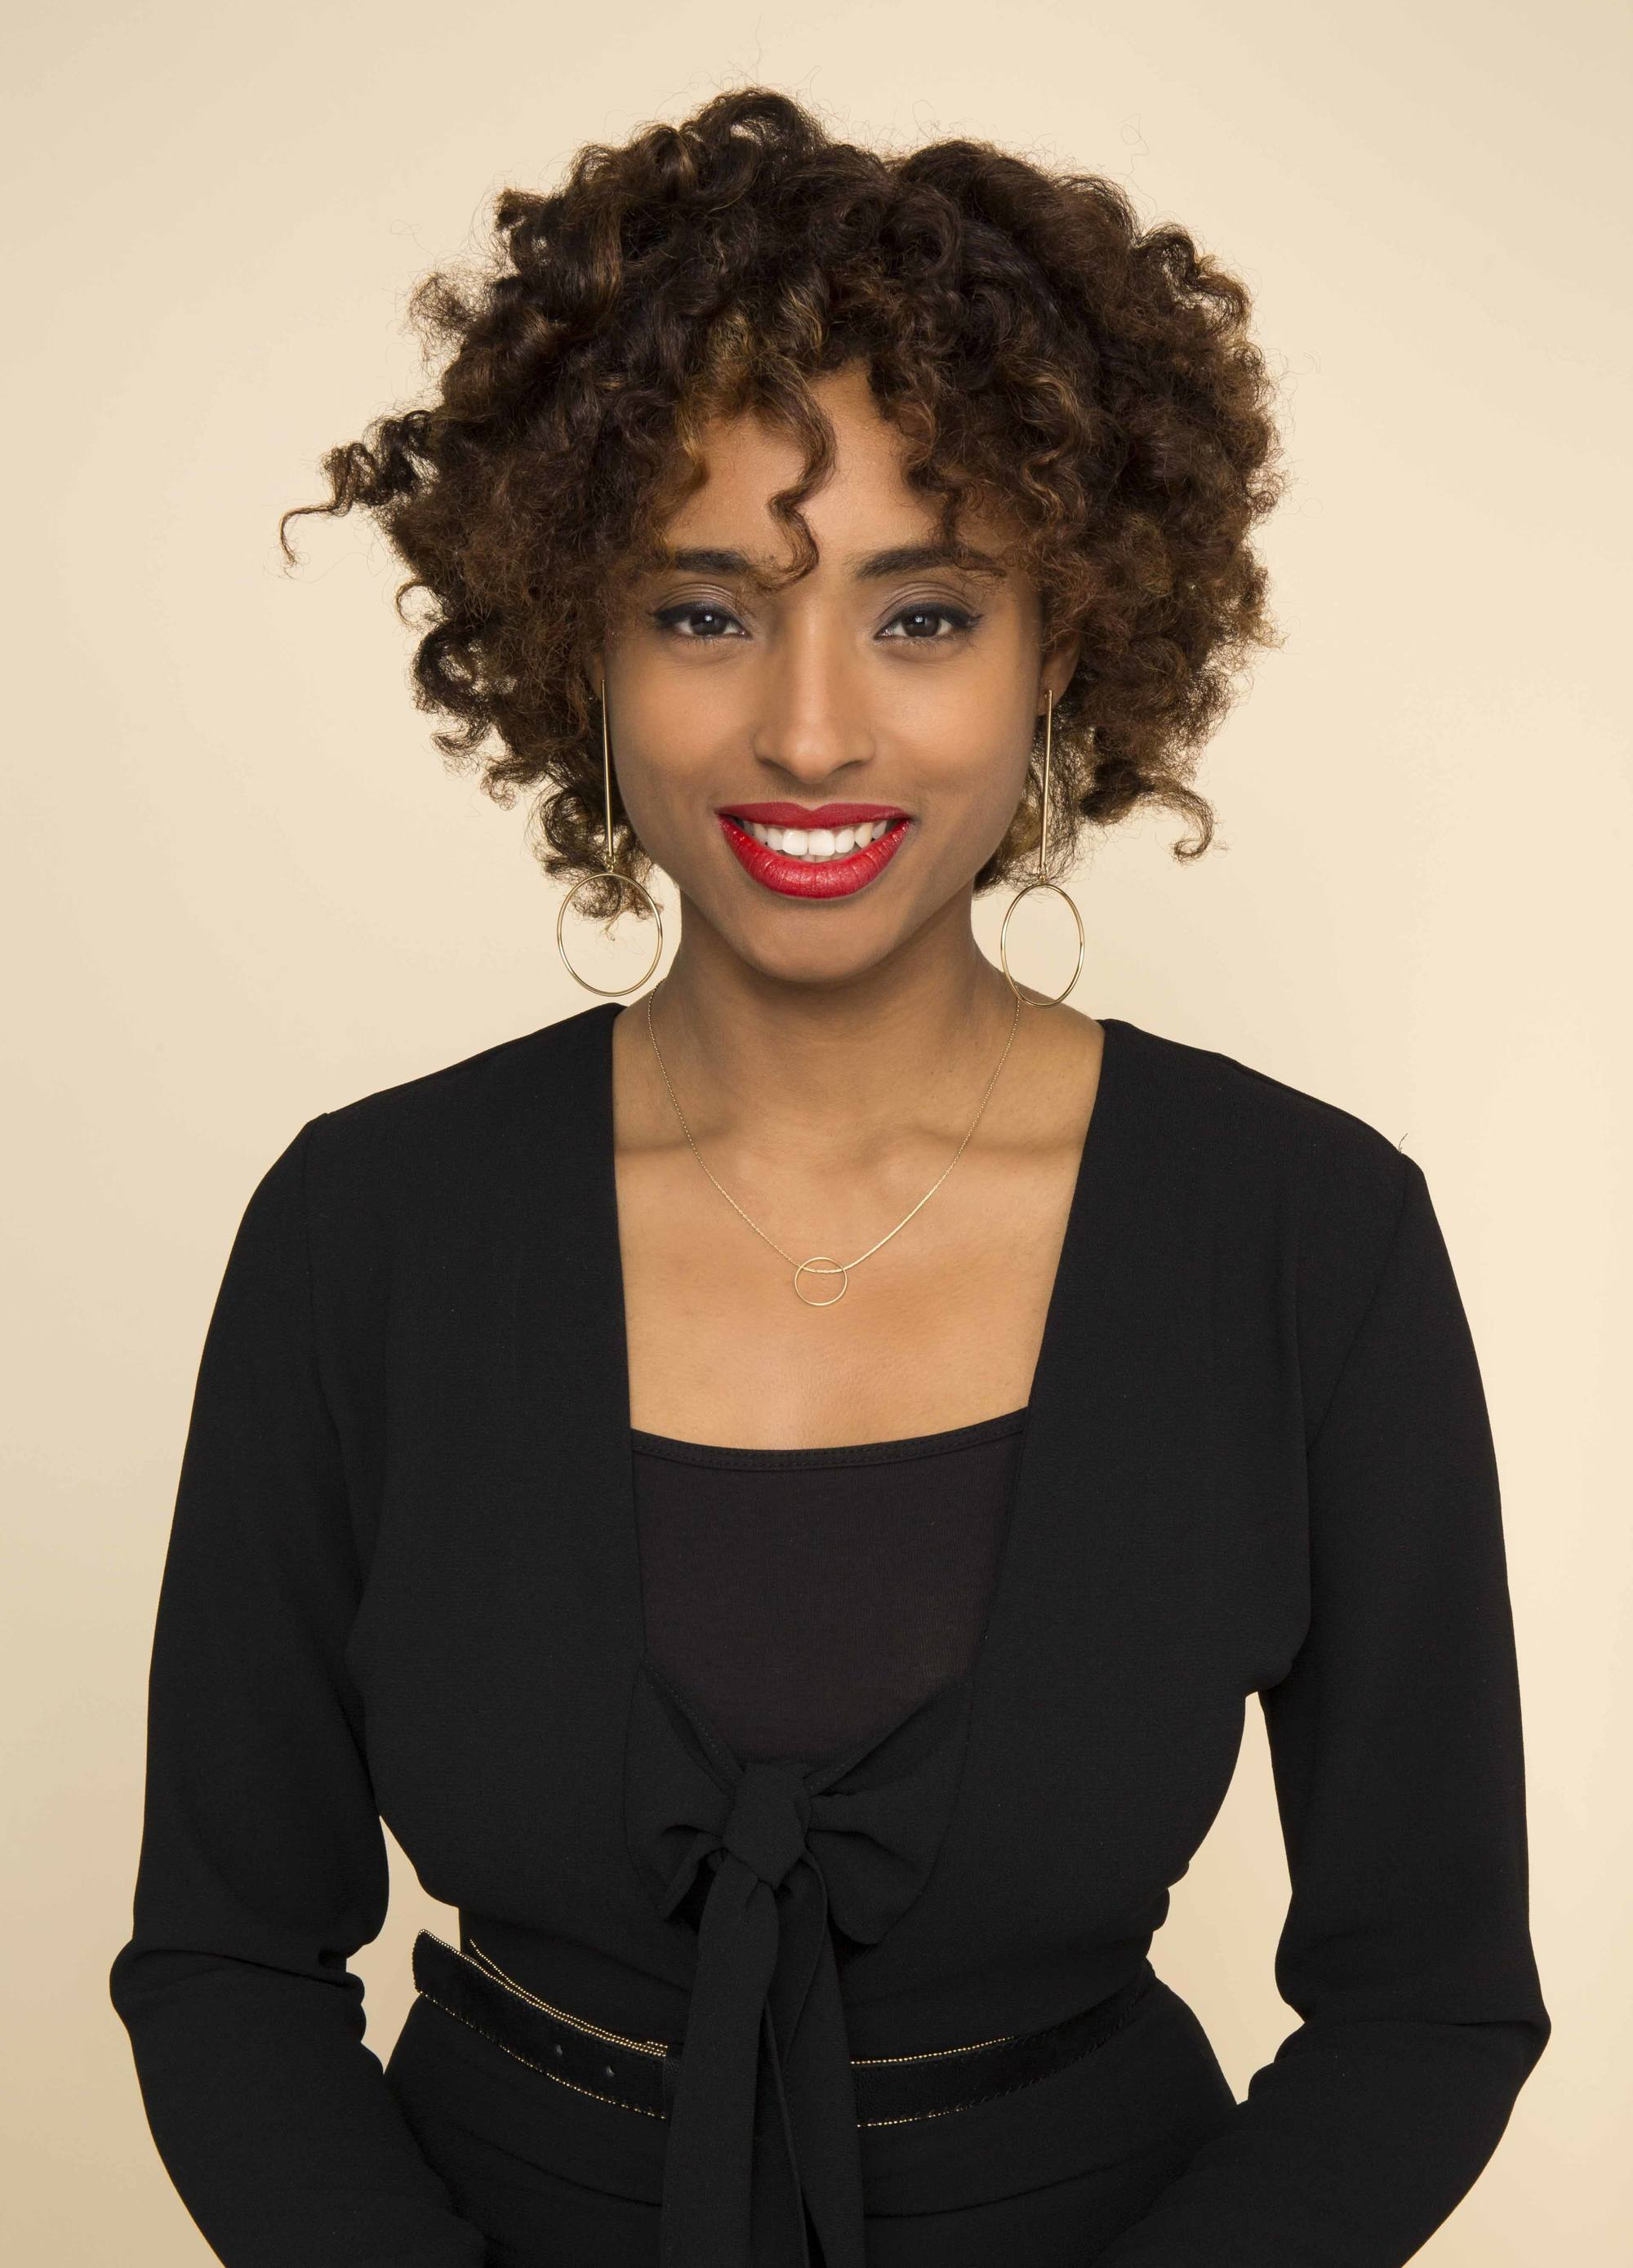 transitioning hairstyles to grow out chemically straightened hair: Bantu curls.